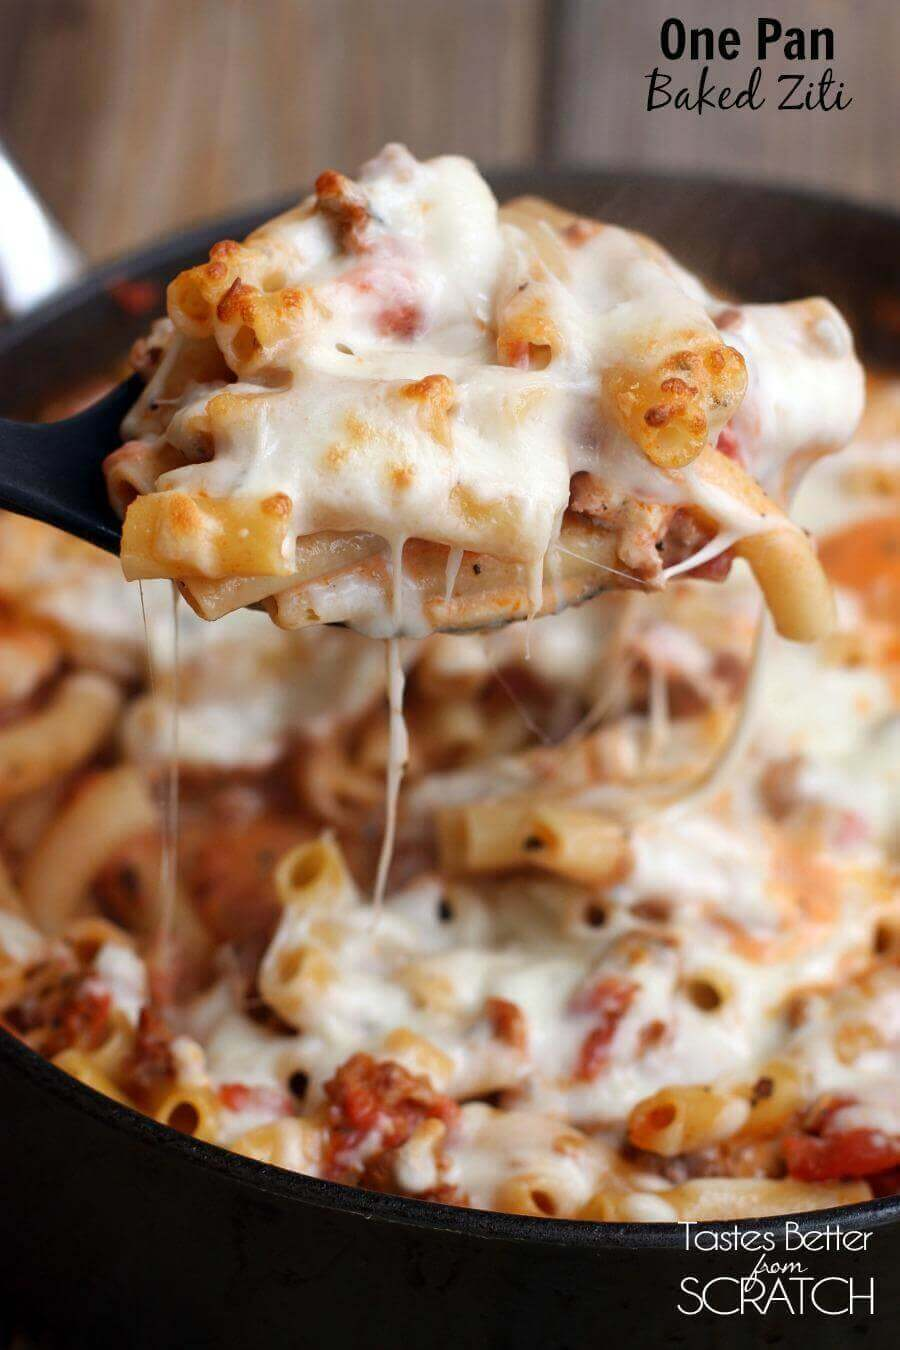 One Pan Baked Ziti